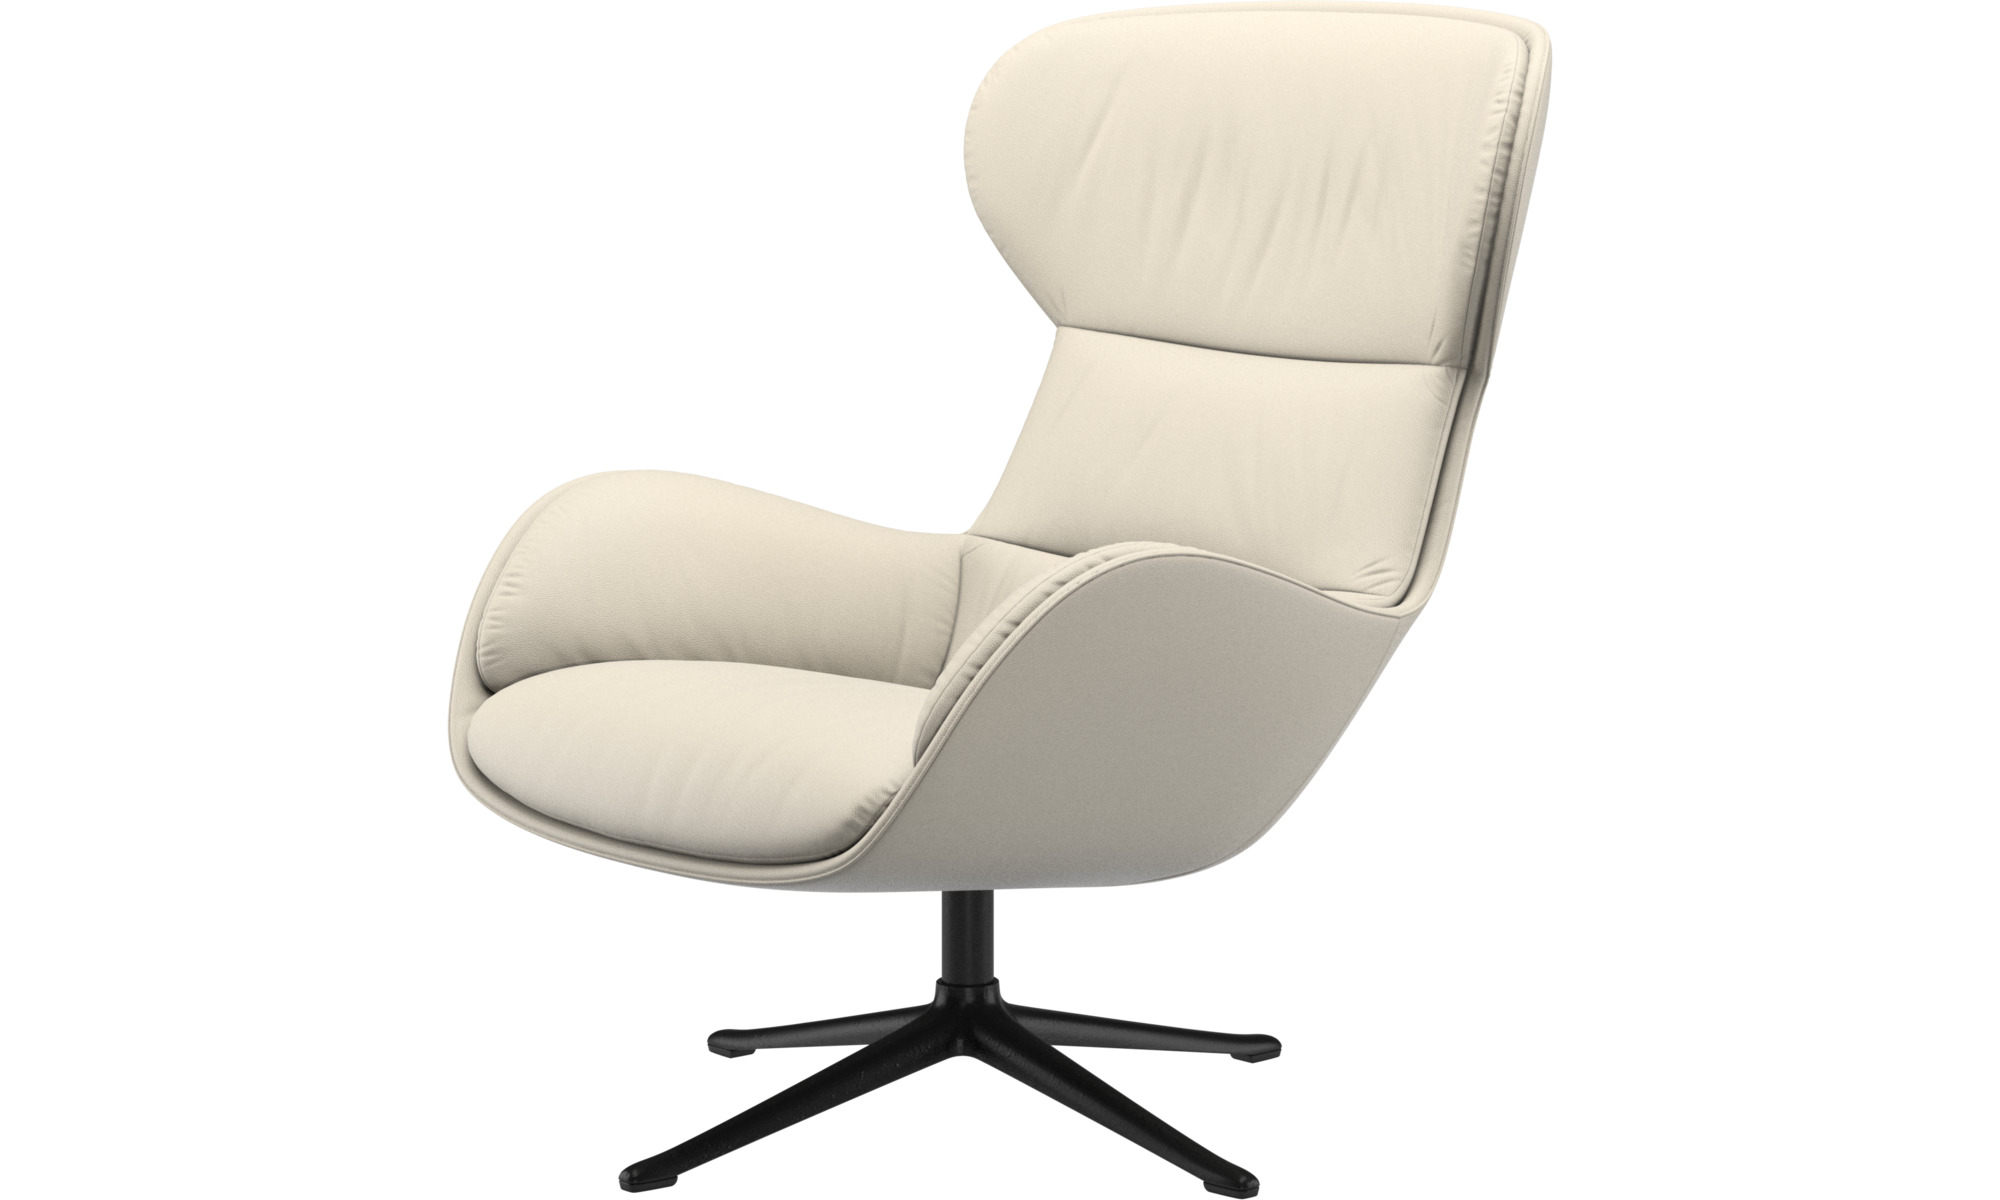 Armchairs - Reno chair with swivel function - White - Leather